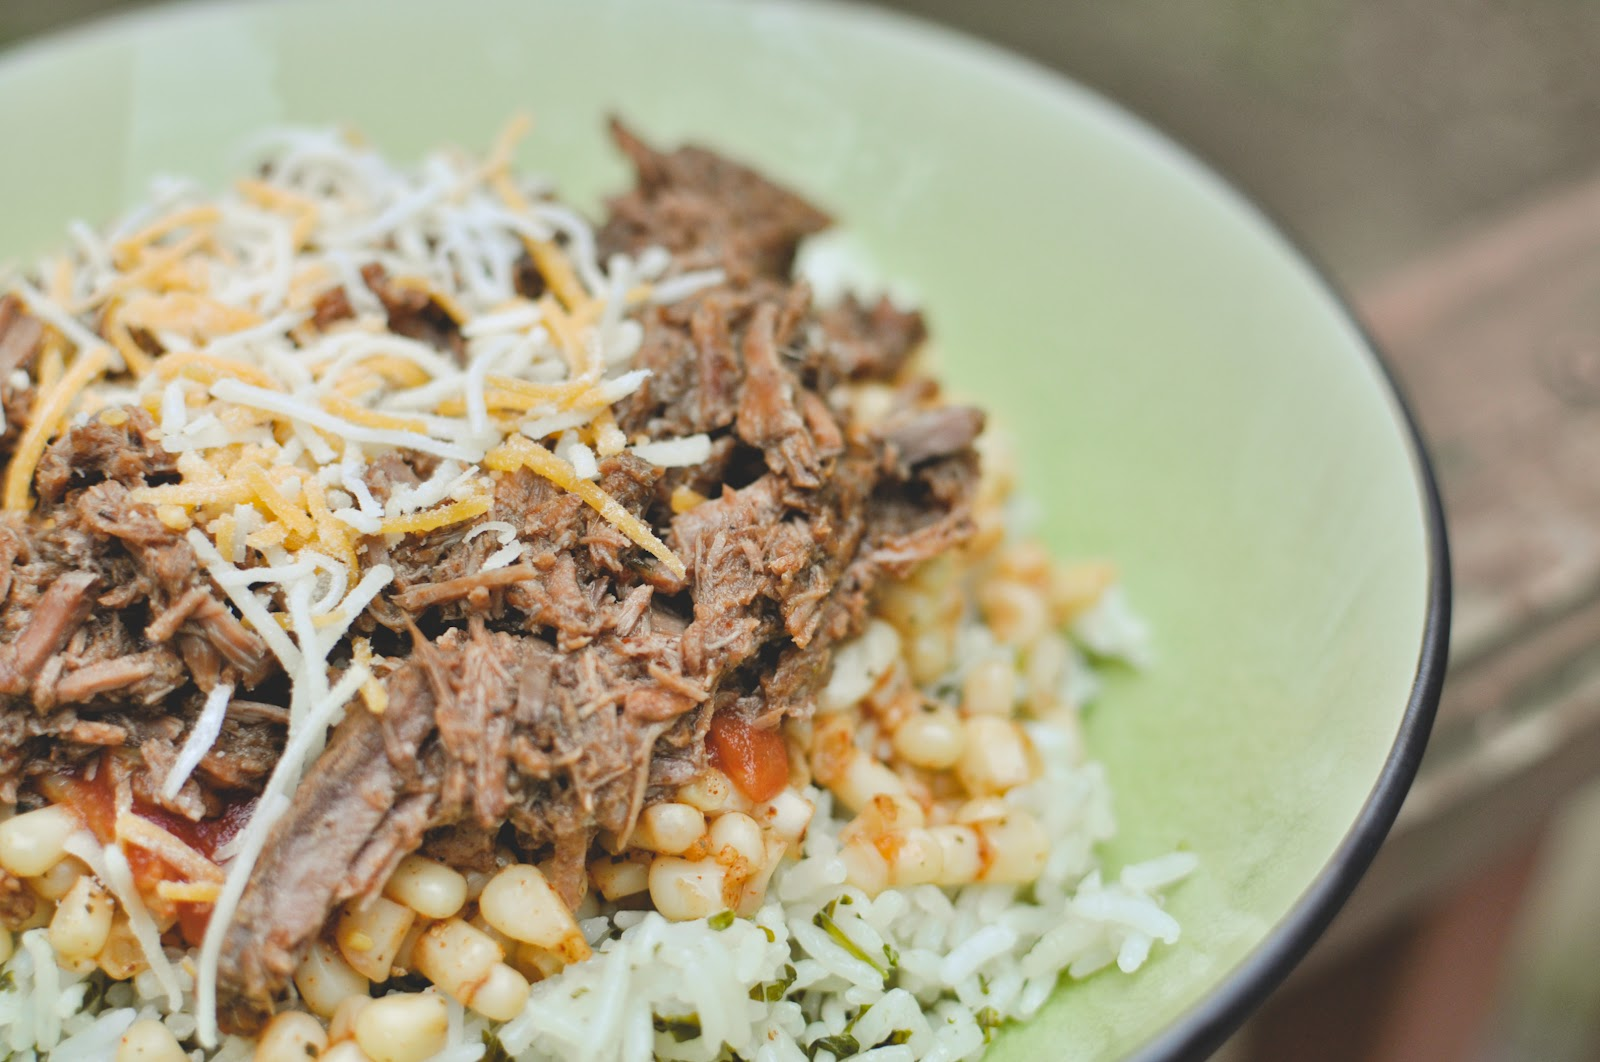 my Chipotle burrito is their Barbacoa Beef. it's a spicy shredded beef ...